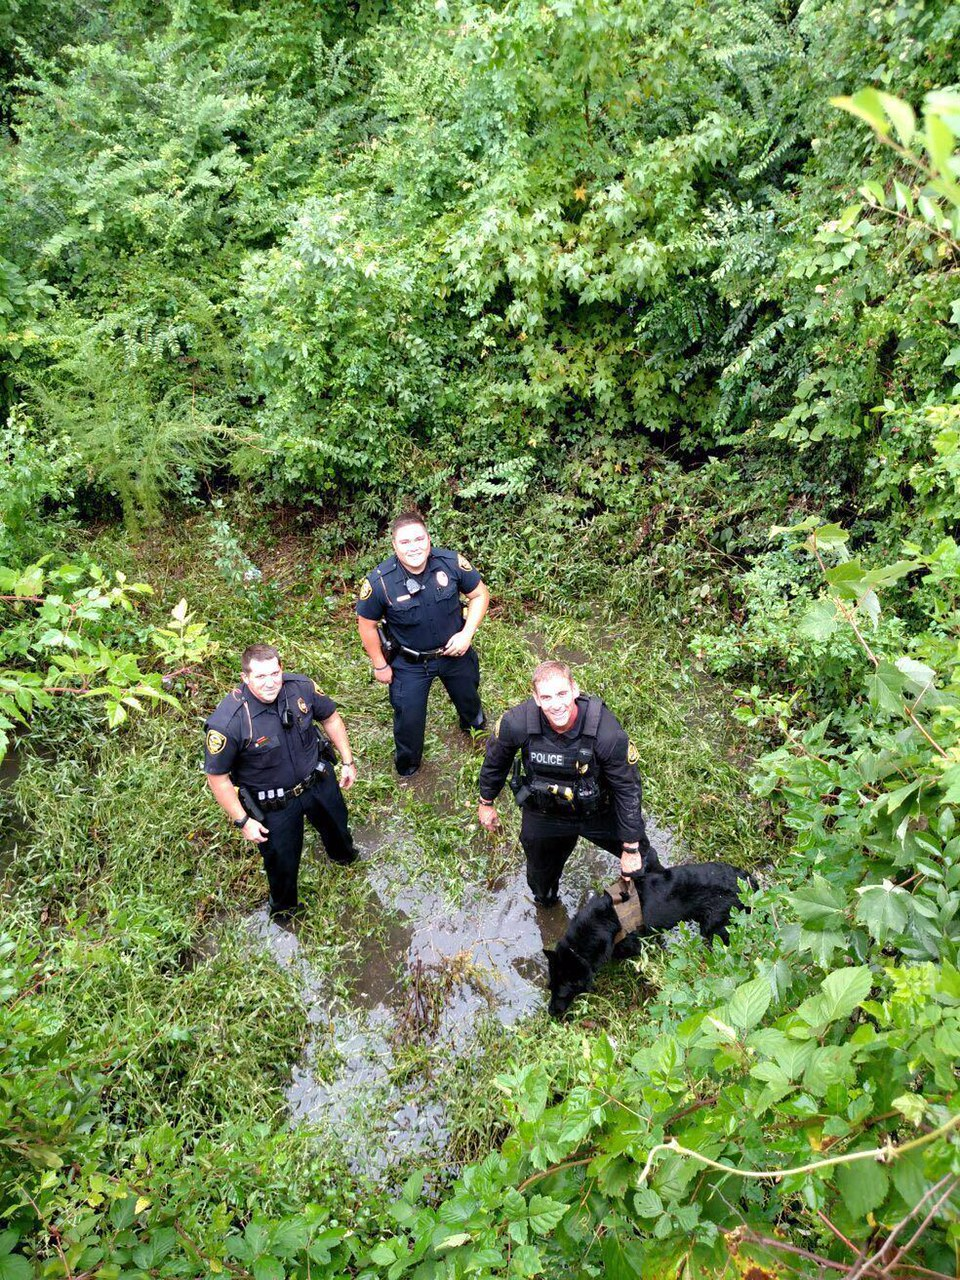 GPD CAPTURES FUGITIVE_267659